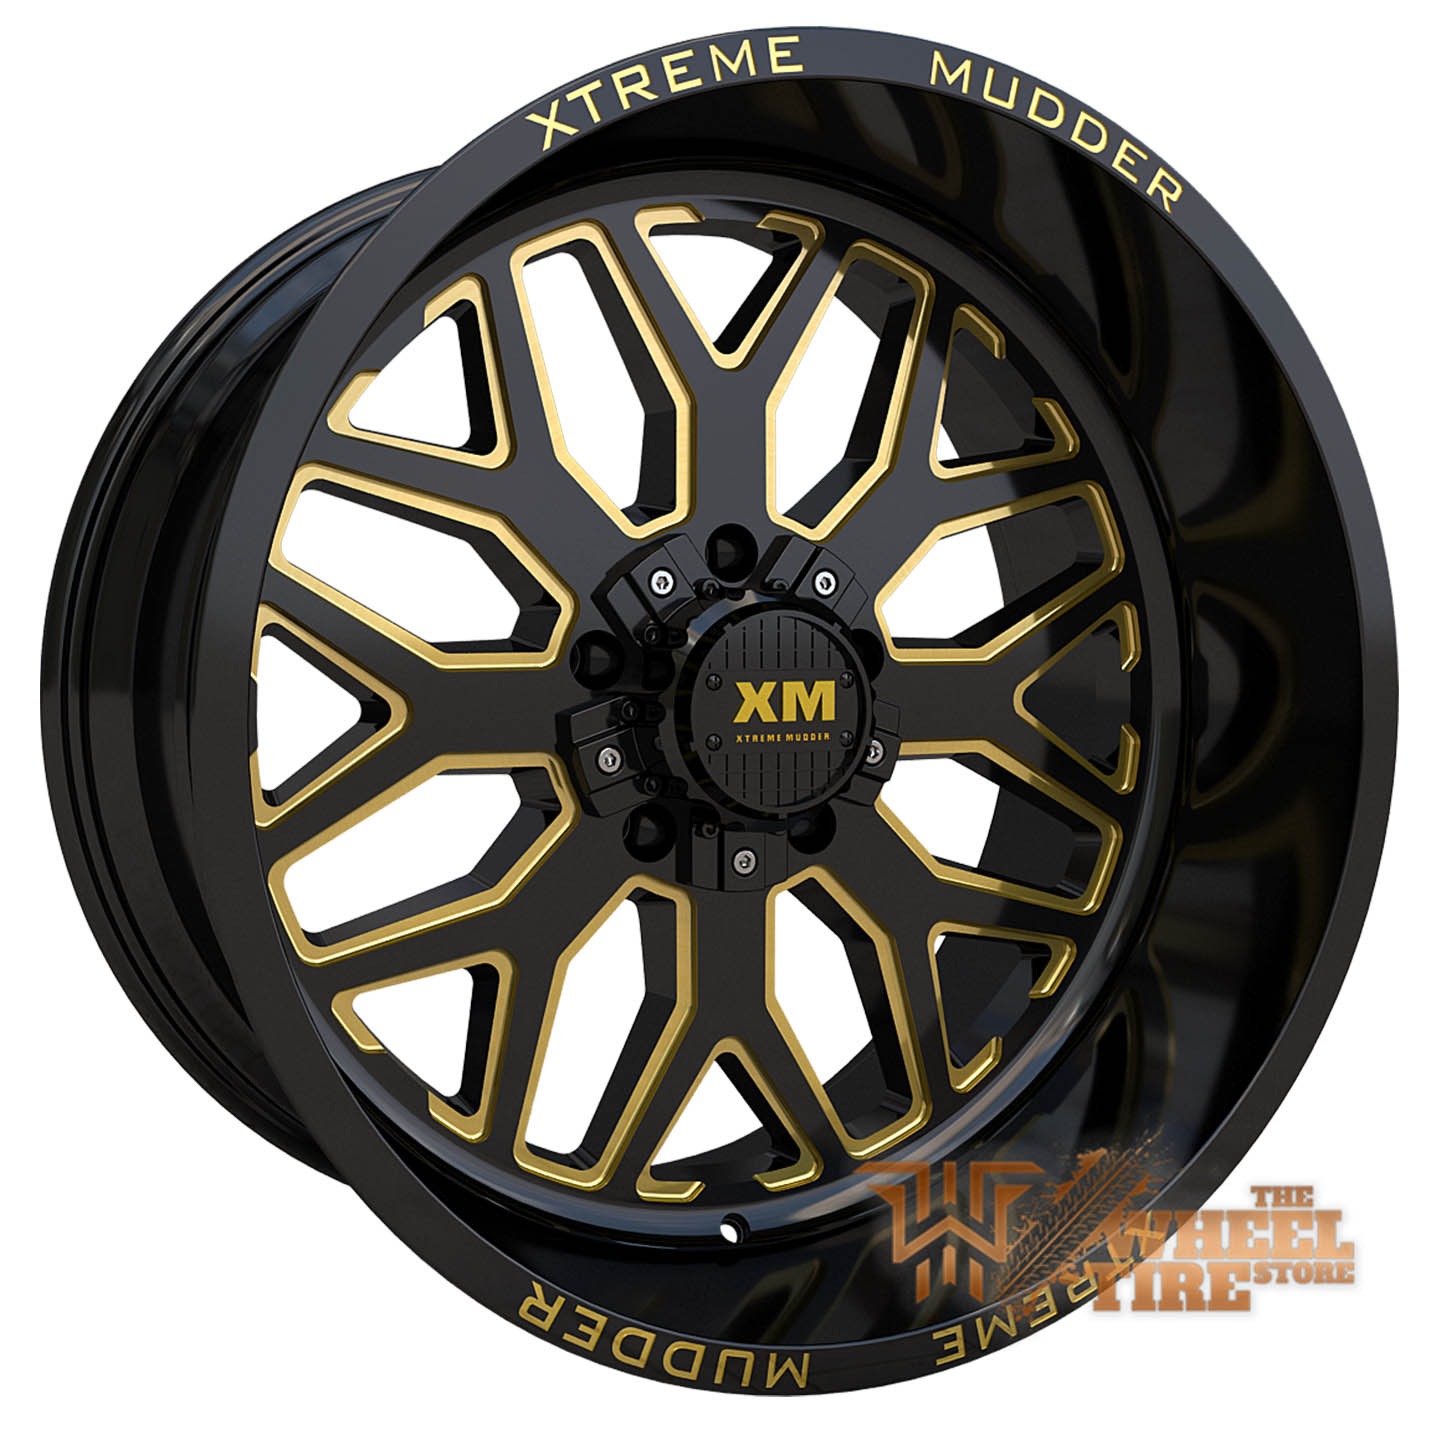 XTREME MUDDER XM-401 Wheel in Gloss Black Yellow Milled (Set of 4)